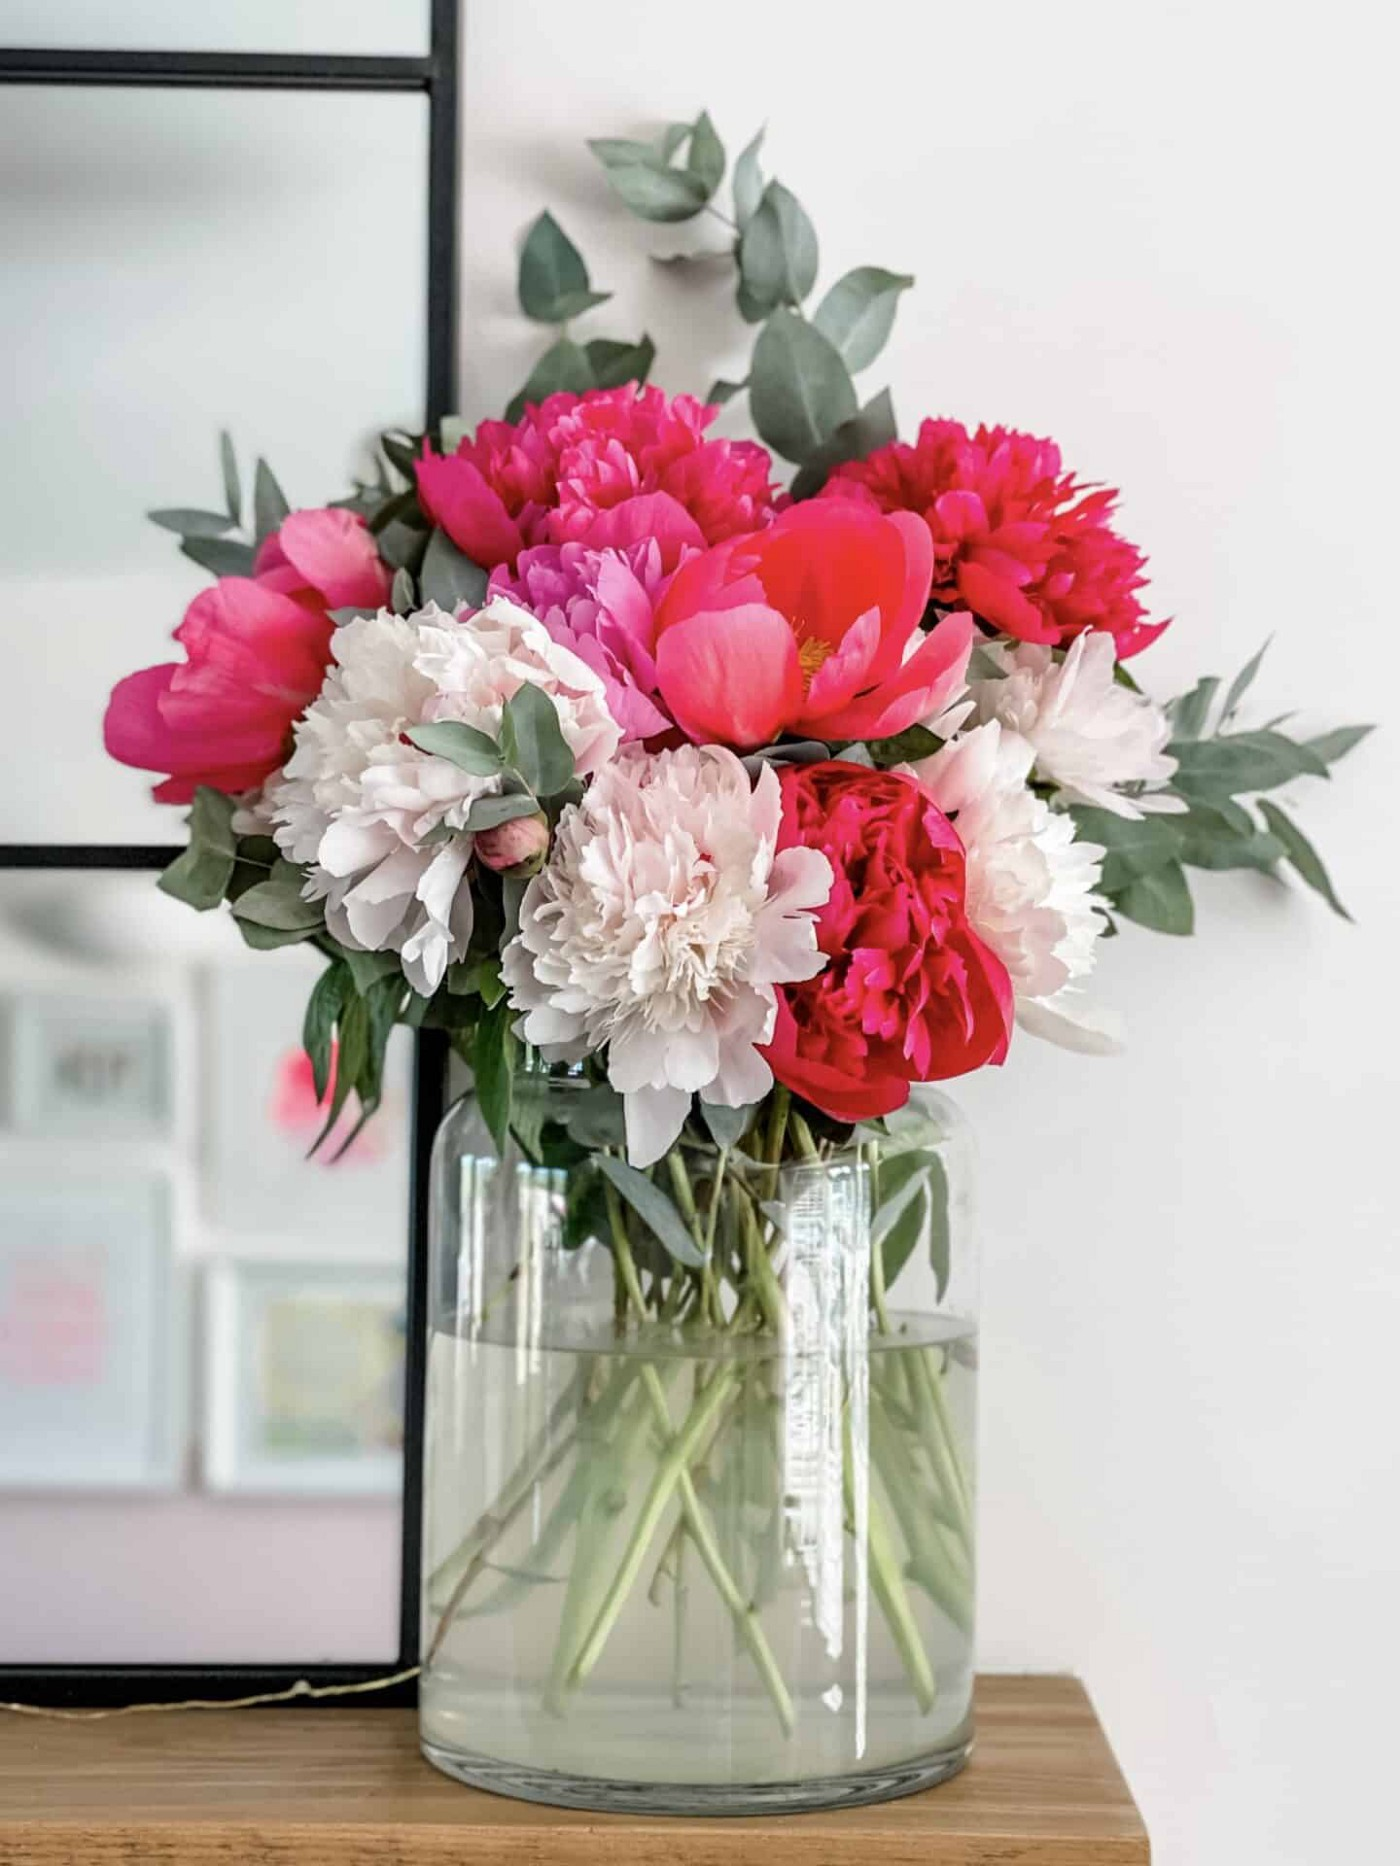 Day six of ethical and sustainable peonies